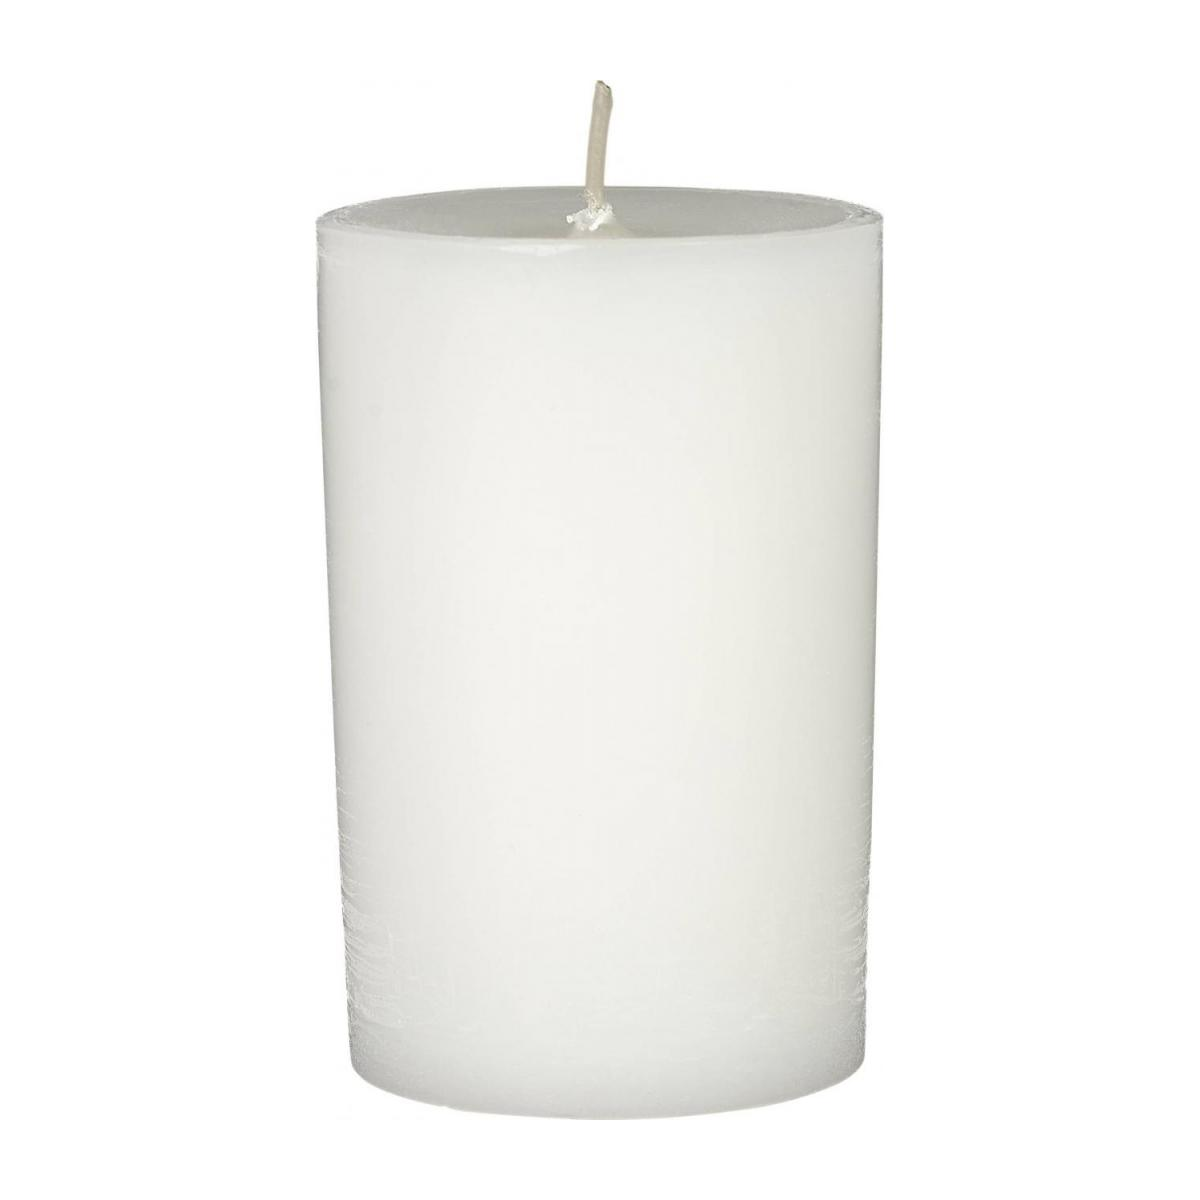 Refill for 3 small Palais scented candles, 3 x 150g n°3